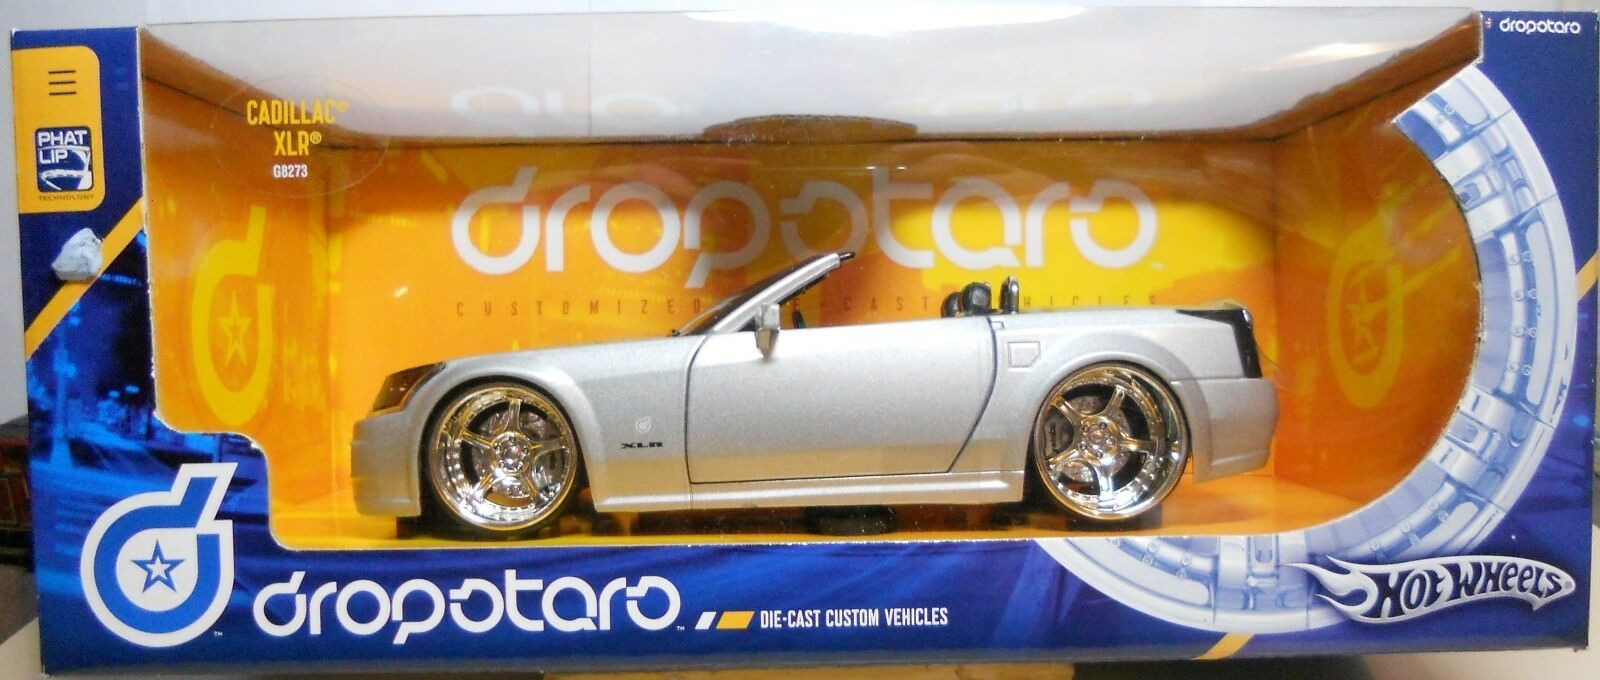 New Hot Wheels 1 18 Scale Die-Cast Dropstar Congreenible Cadillac XLR G8273